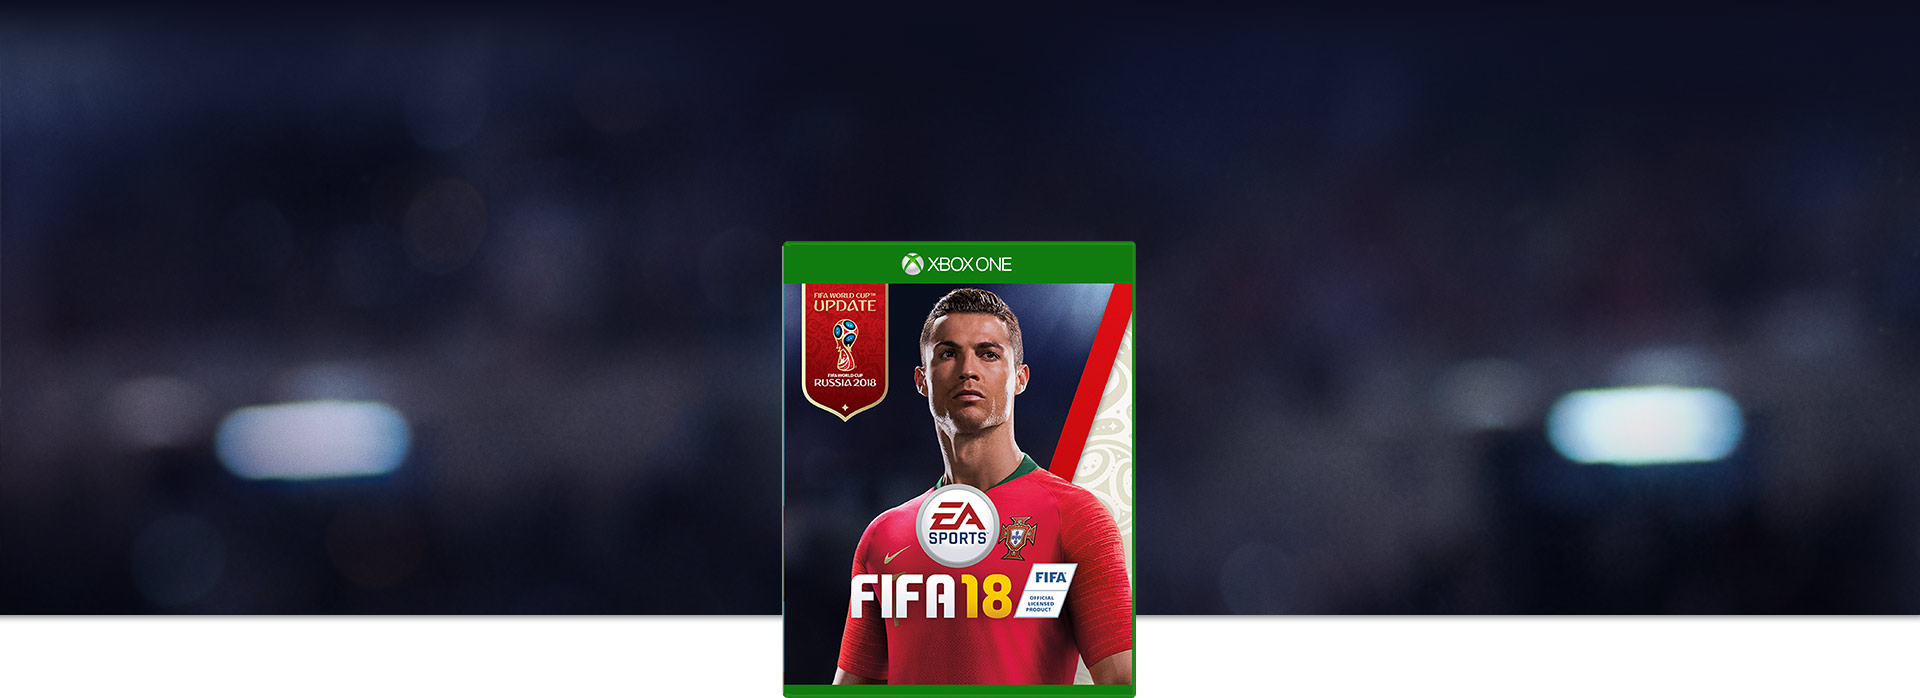 FIFA 18 boxshot, Ronaldo in a Portugal World Cup kit